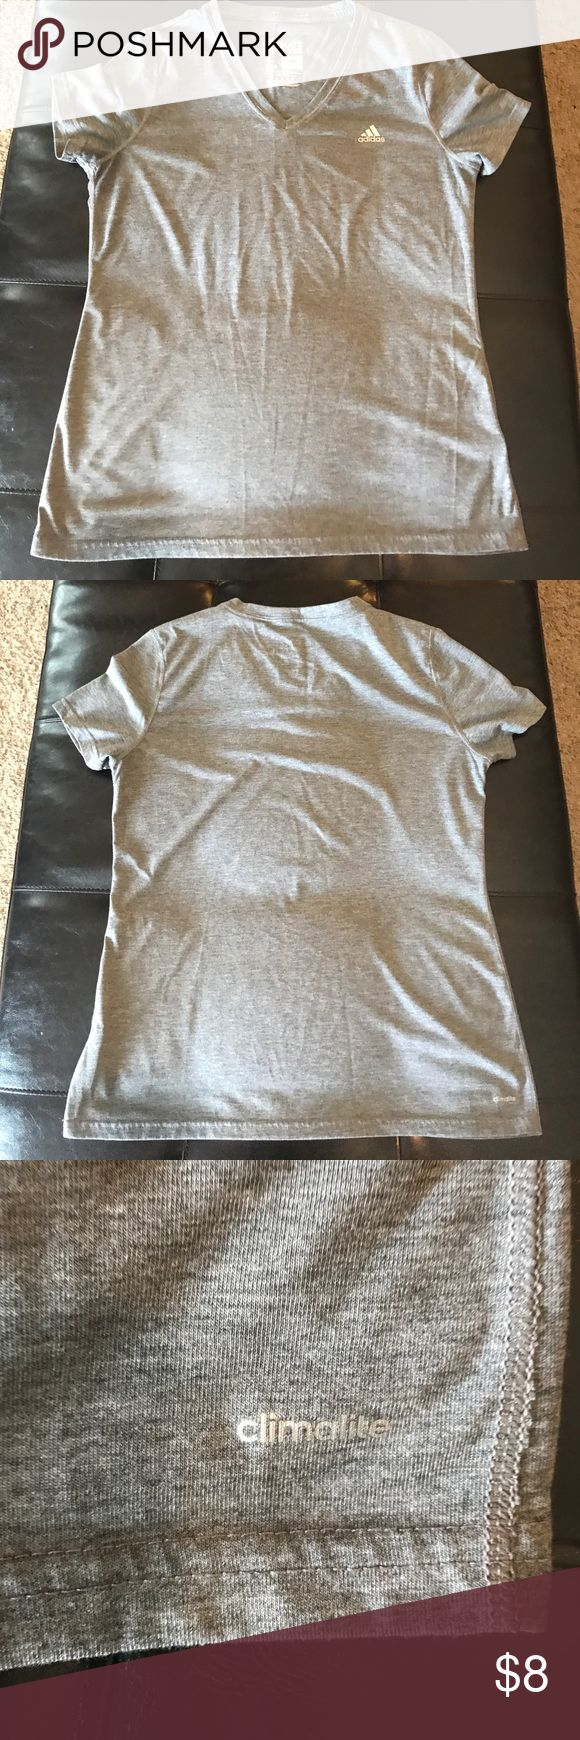 Adidas workout shirt Adidas grey workout shirt. 85% polyester 15% cotton. Worn a handful of times. Adidas Tops Tees - Short Sleeve